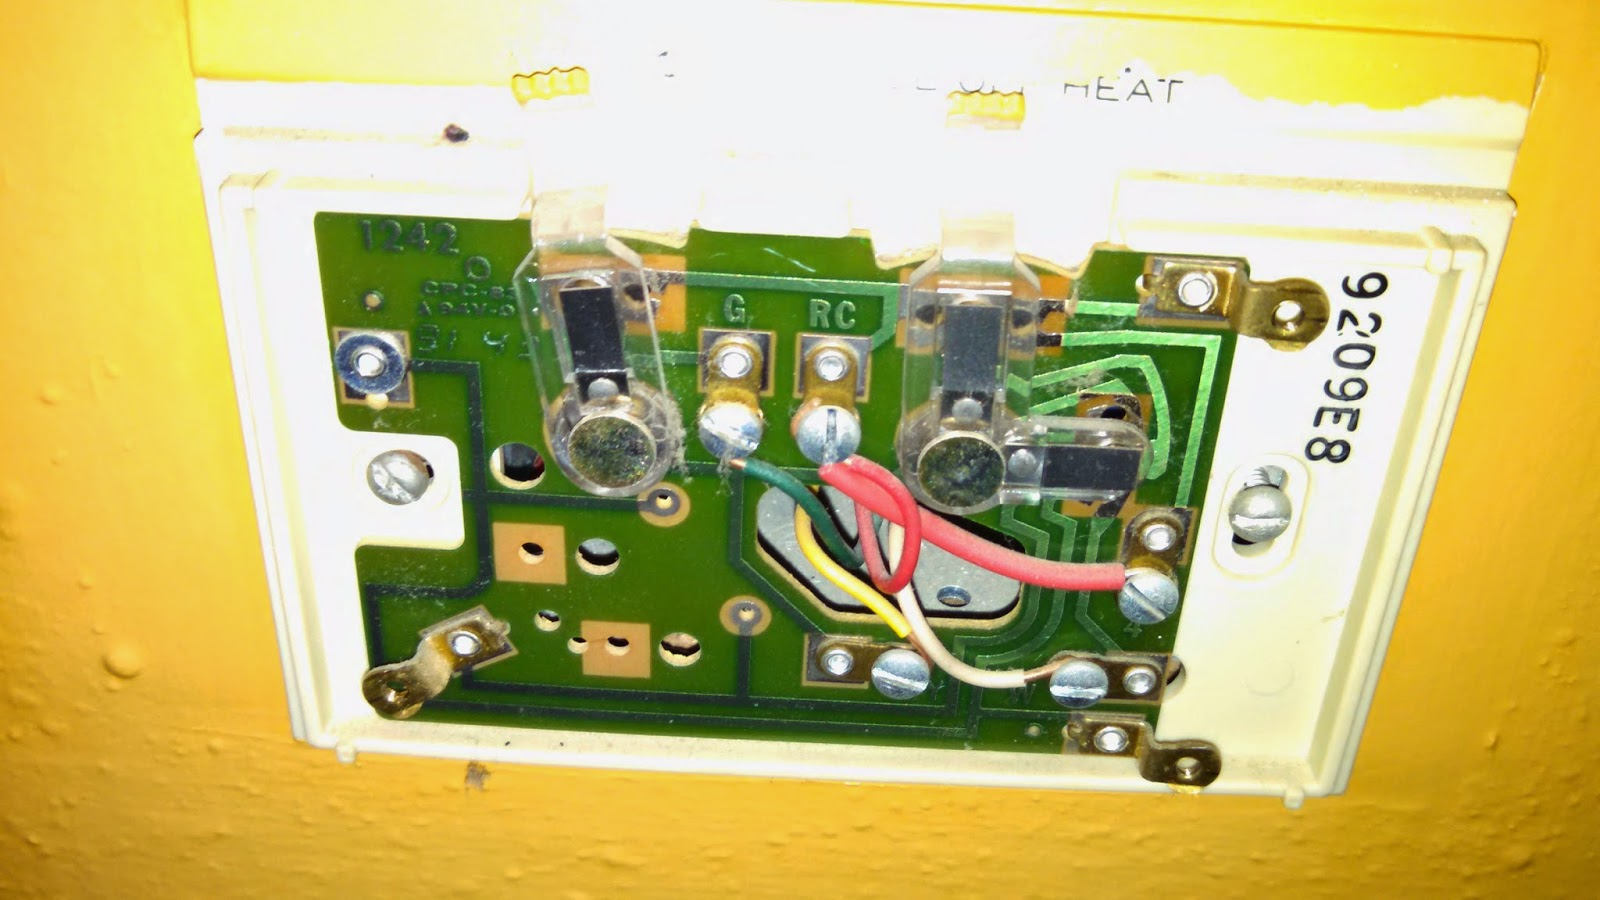 medium resolution of circuit card and wire connections in old thermostat image source dr penny pincher